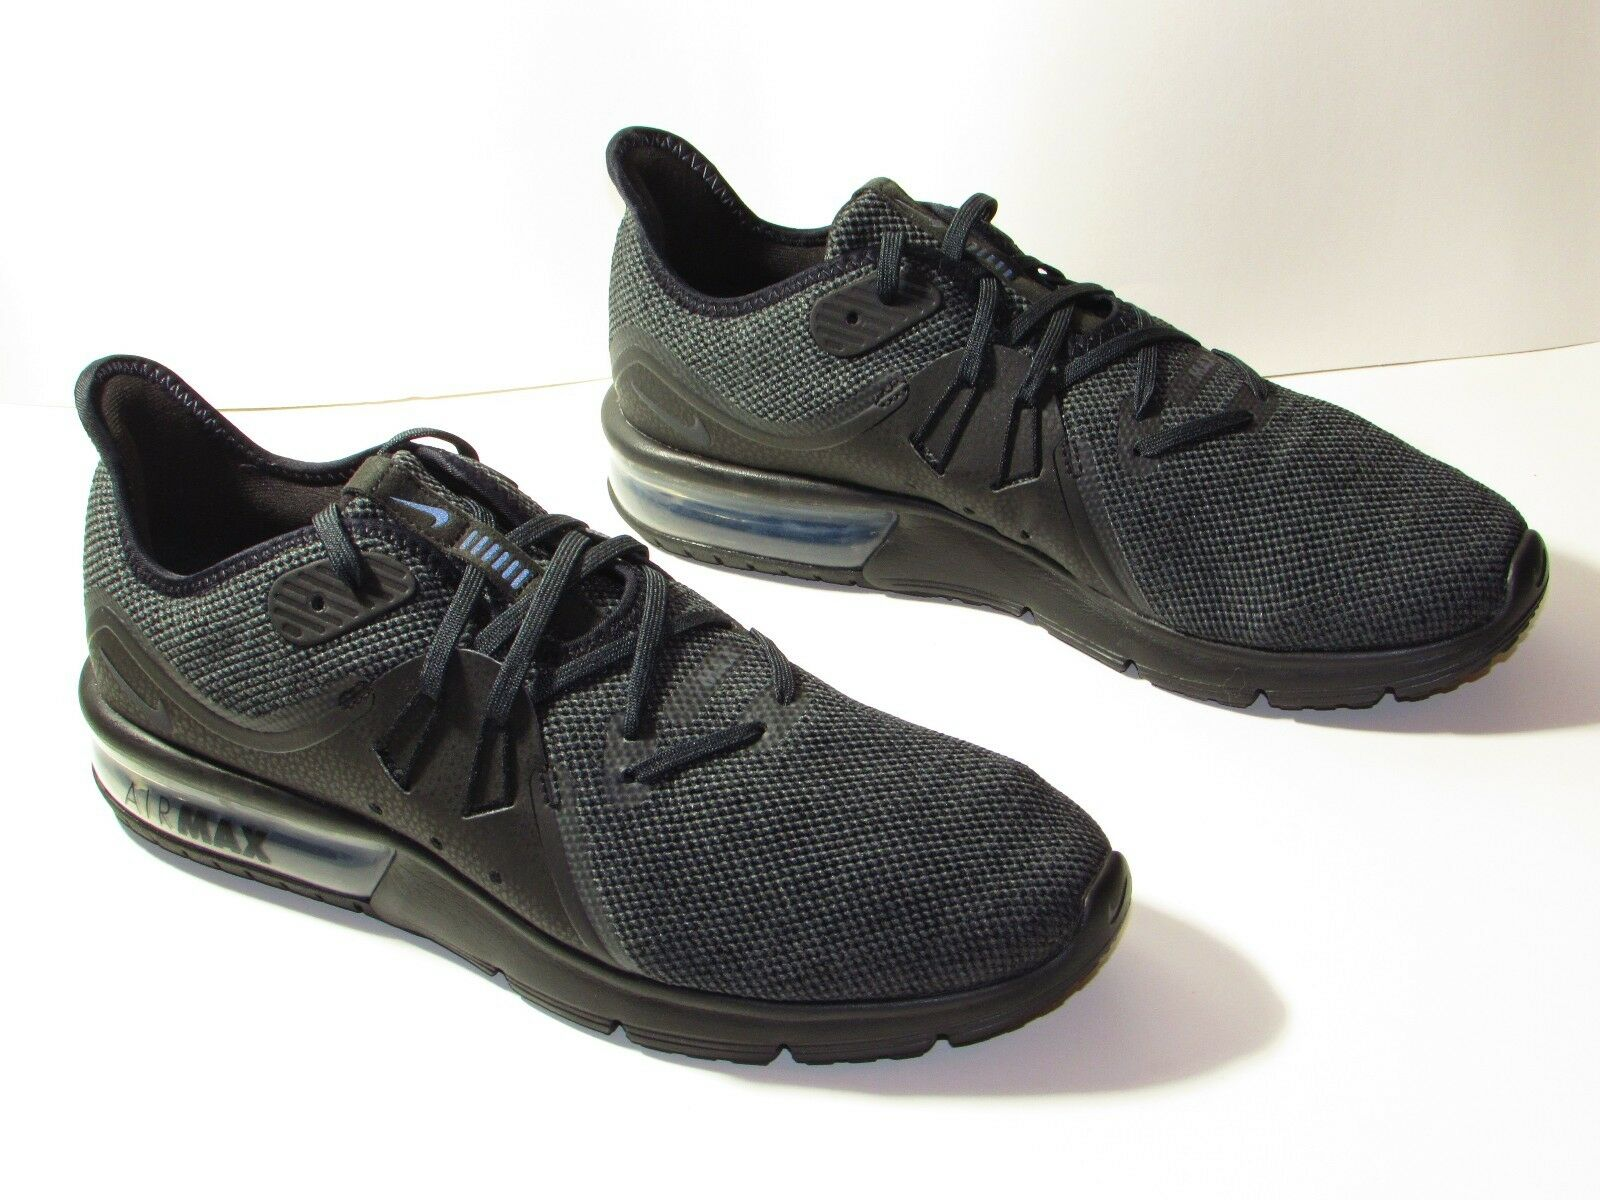 Men's Nike Air Max Sequent 3 Running Shoe Black/Anthracite 921694 010 Size US 9